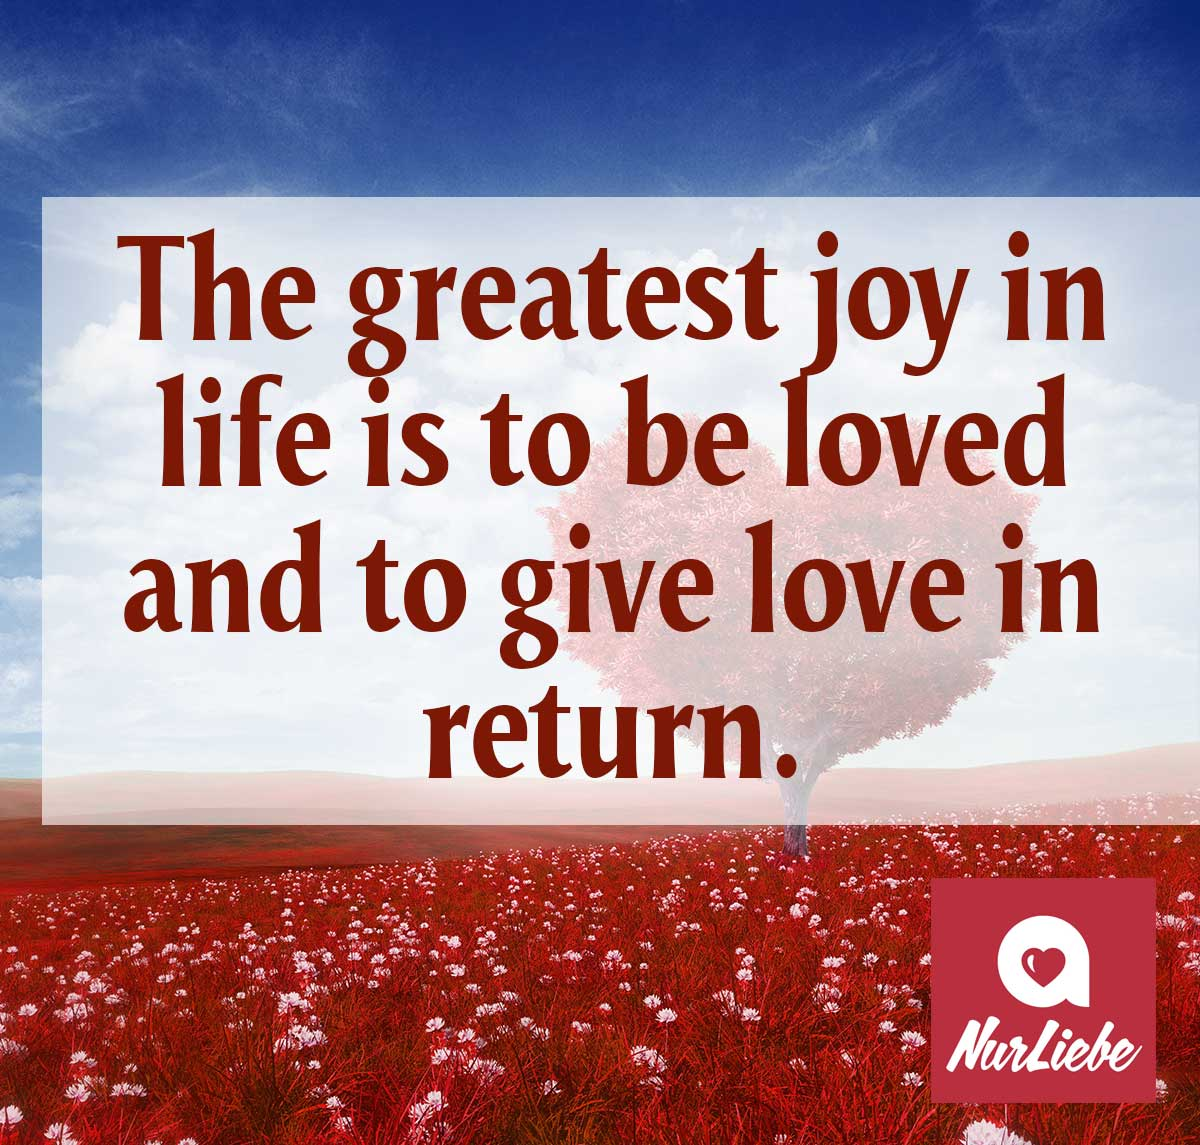 Liebesspruch Auf Englisch The Greatest Joy In Life Is To Be Loved And To Give Love